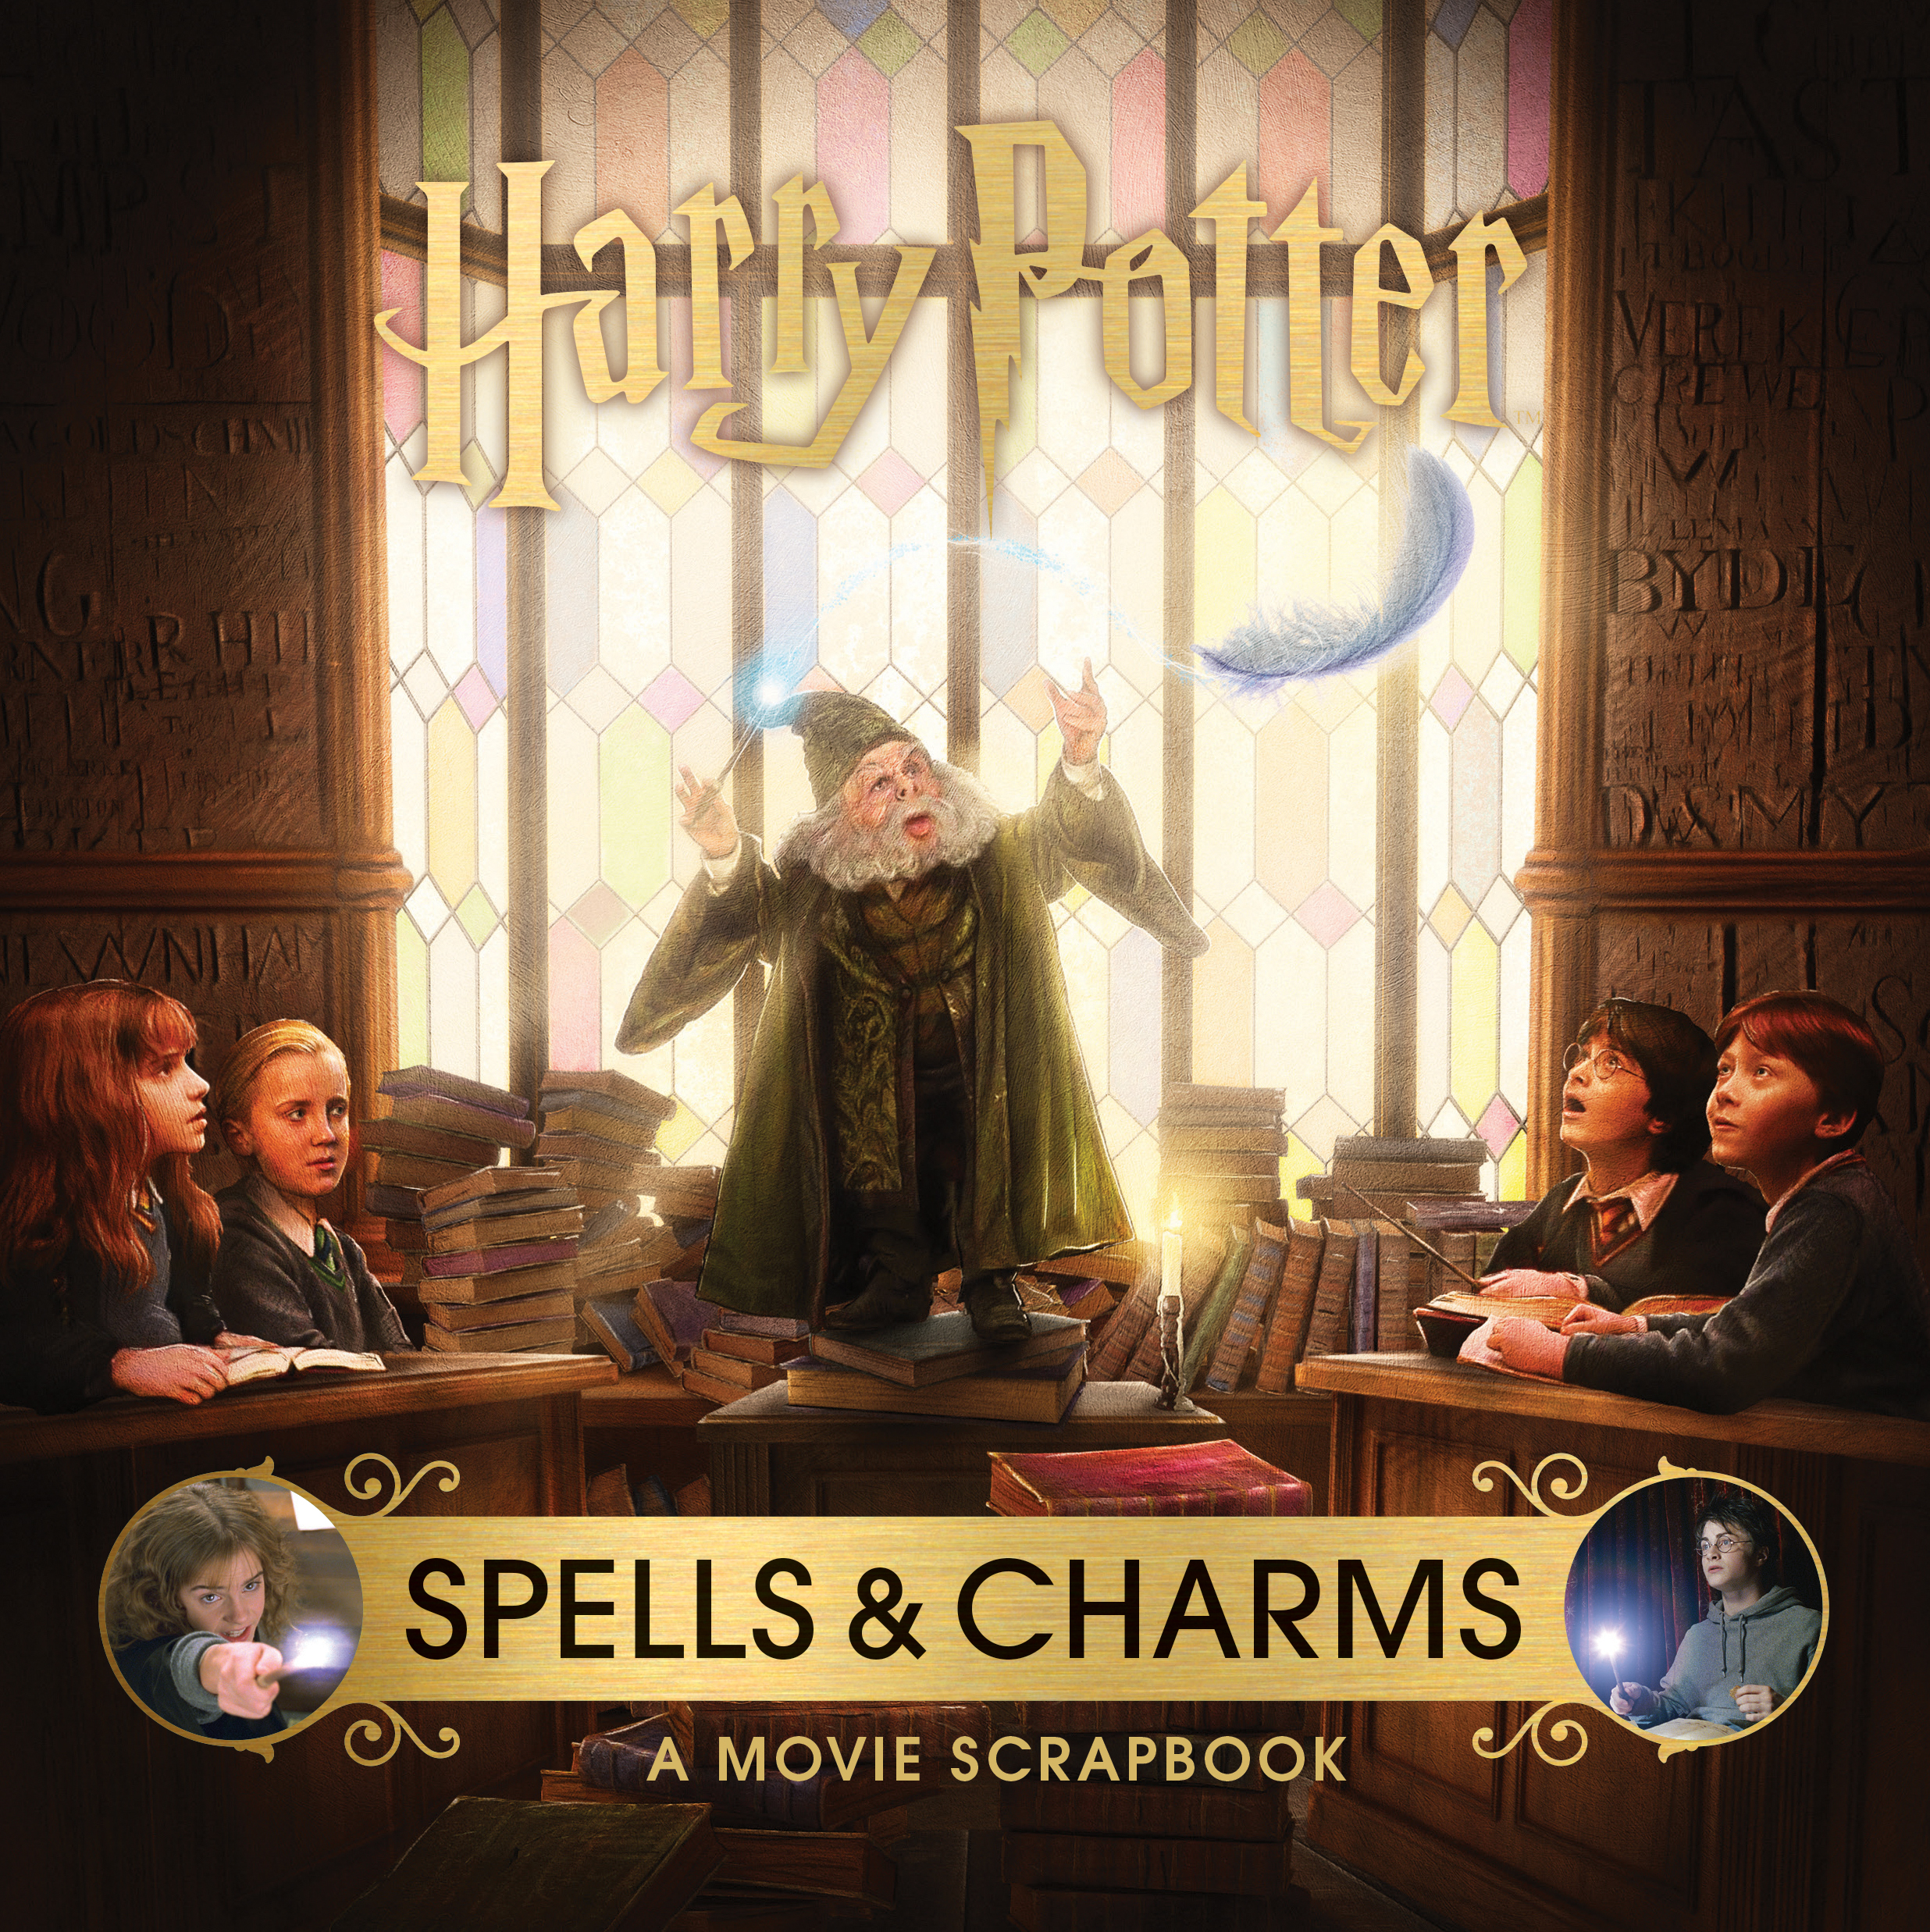 Have you ever wondered about the story and execution behind many of the iconic spells? This book will give you all the magical inside info!